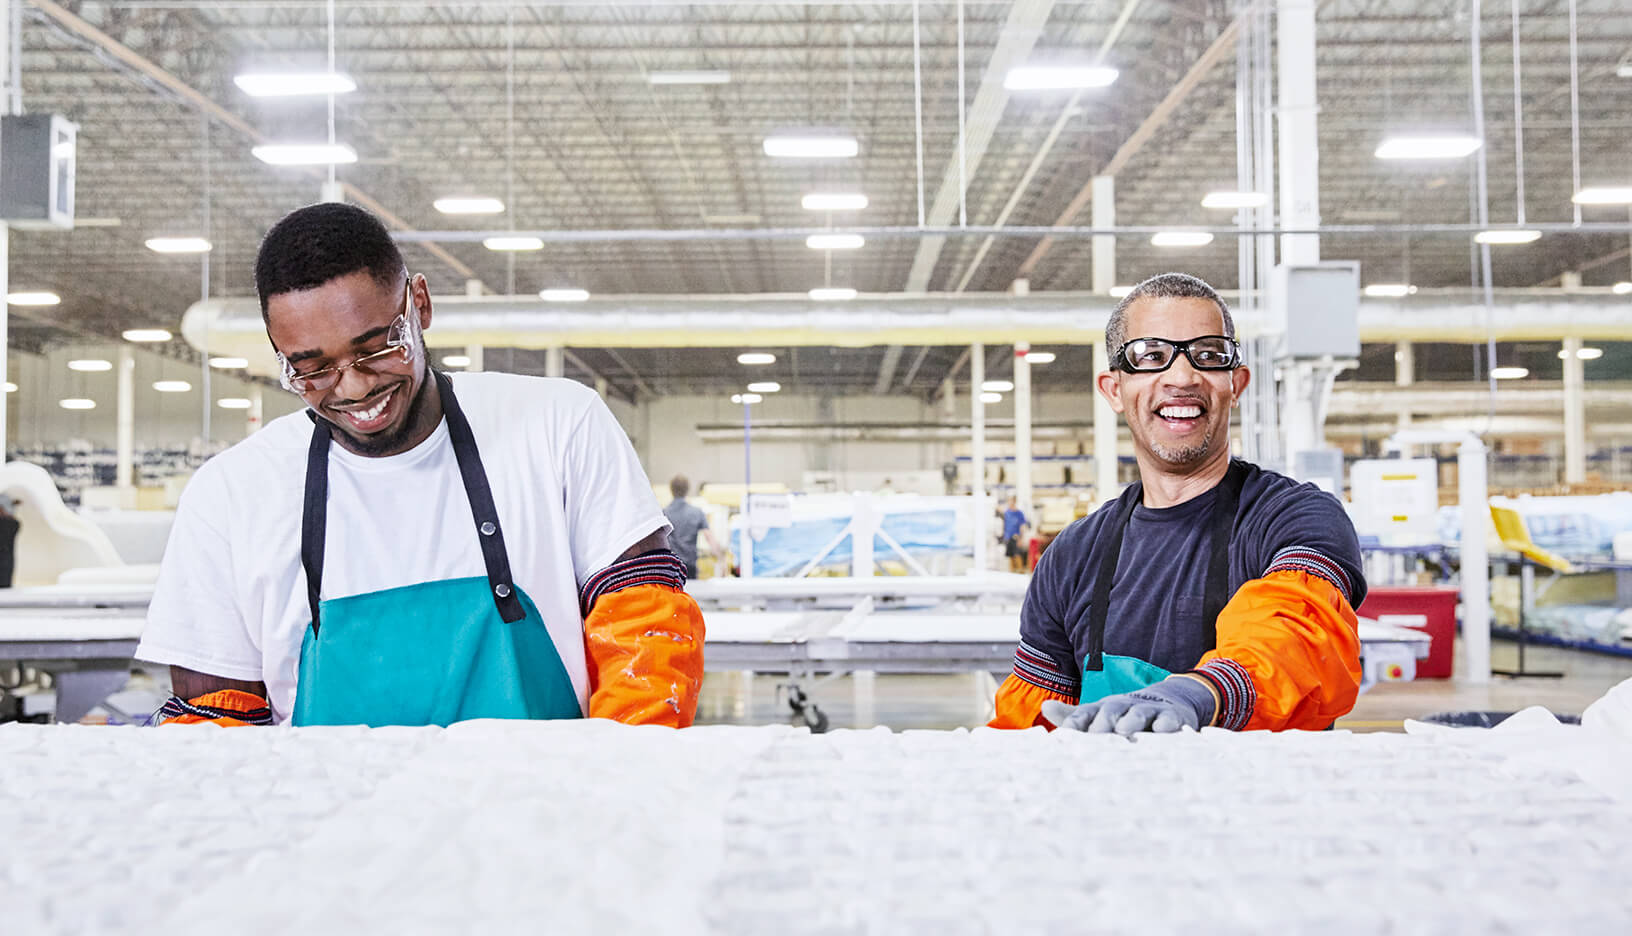 Two men smiling at work in a manufacturing plant